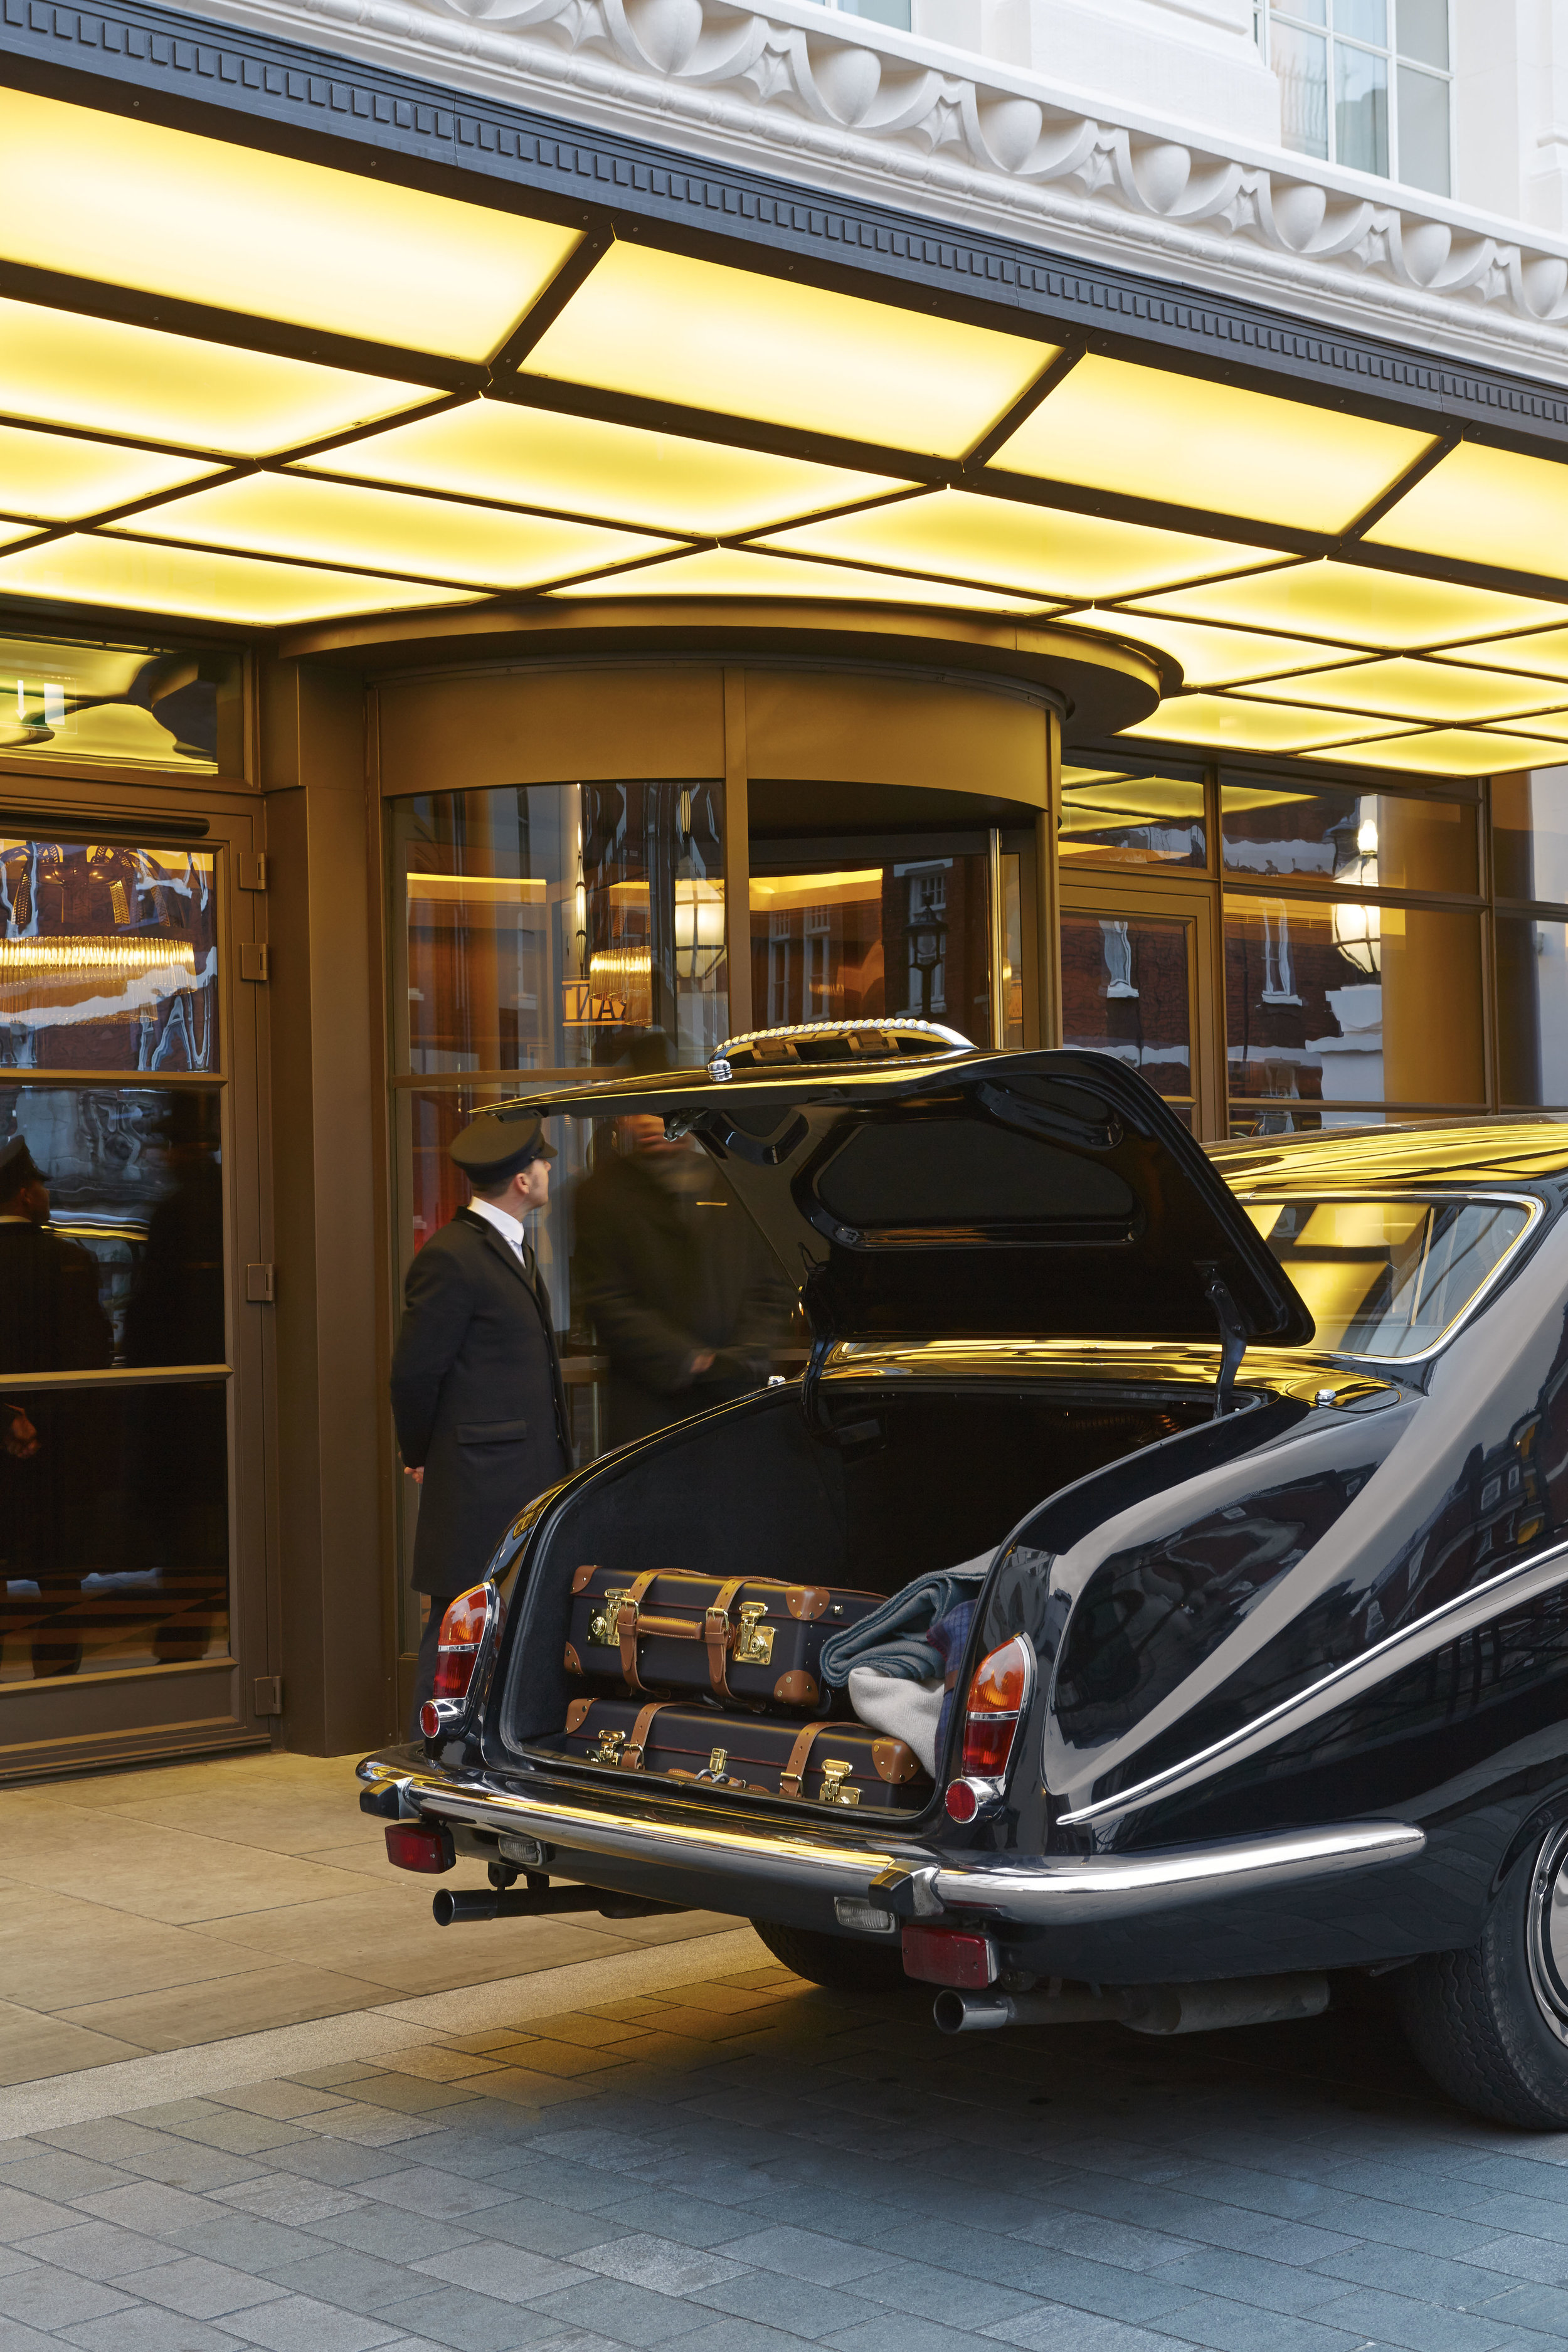 Explore London in a timeless manner in the Beaumont's vintage Daimler. All hoteL PHOTOS COURTESY OF THE BEAUMONT